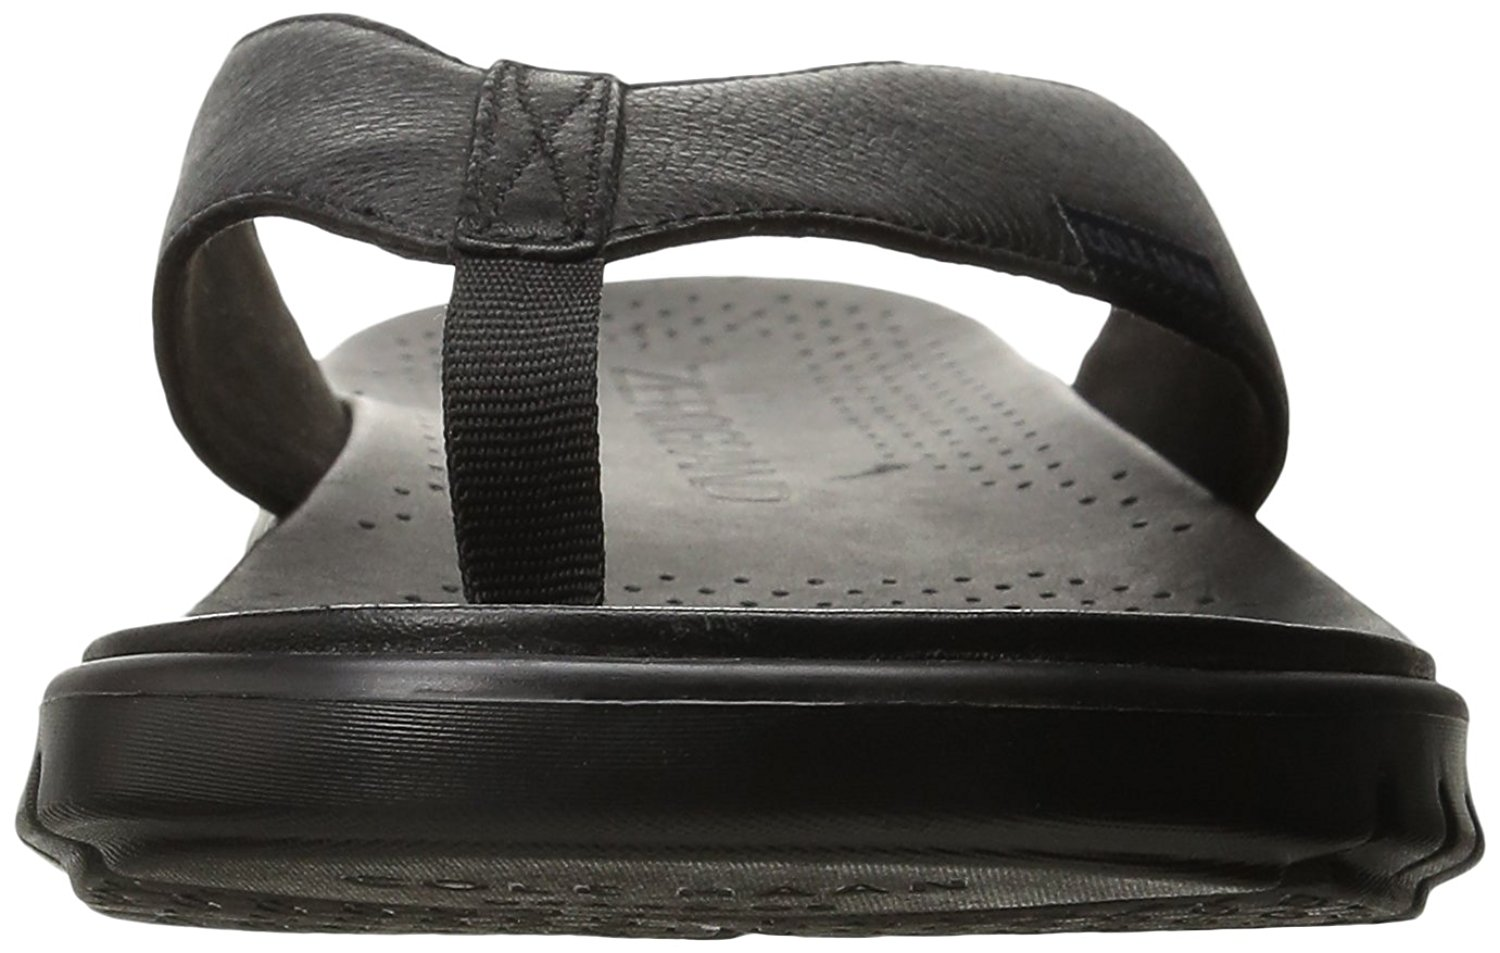 ad5afb435223 Cole Haan Men s Zerogrand Thong Sandal - Black - Size  11 - Check ...